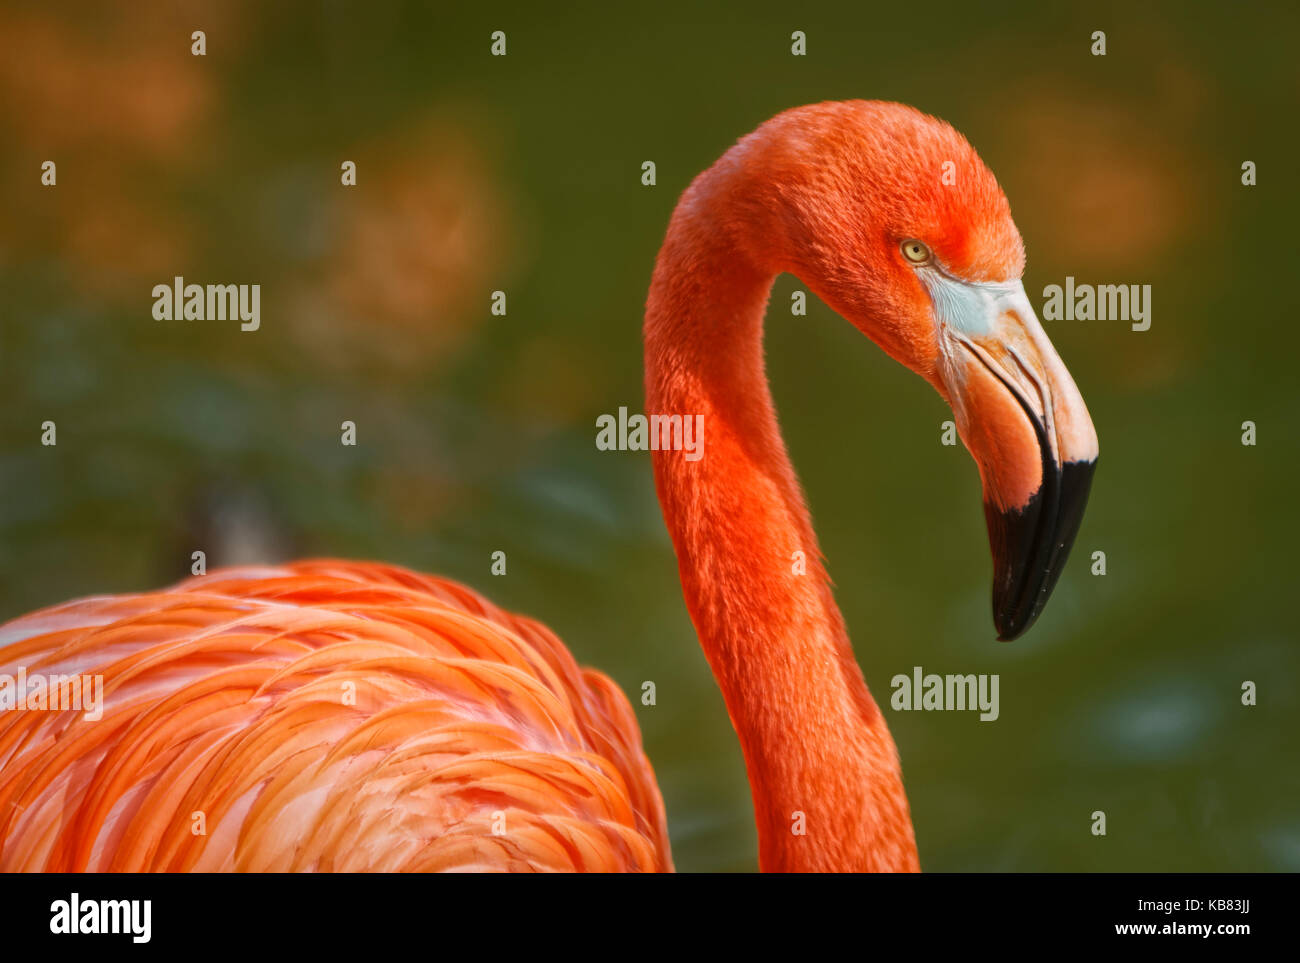 Flamingo portrait showing beak head neck and part of body with blurred background - Stock Image